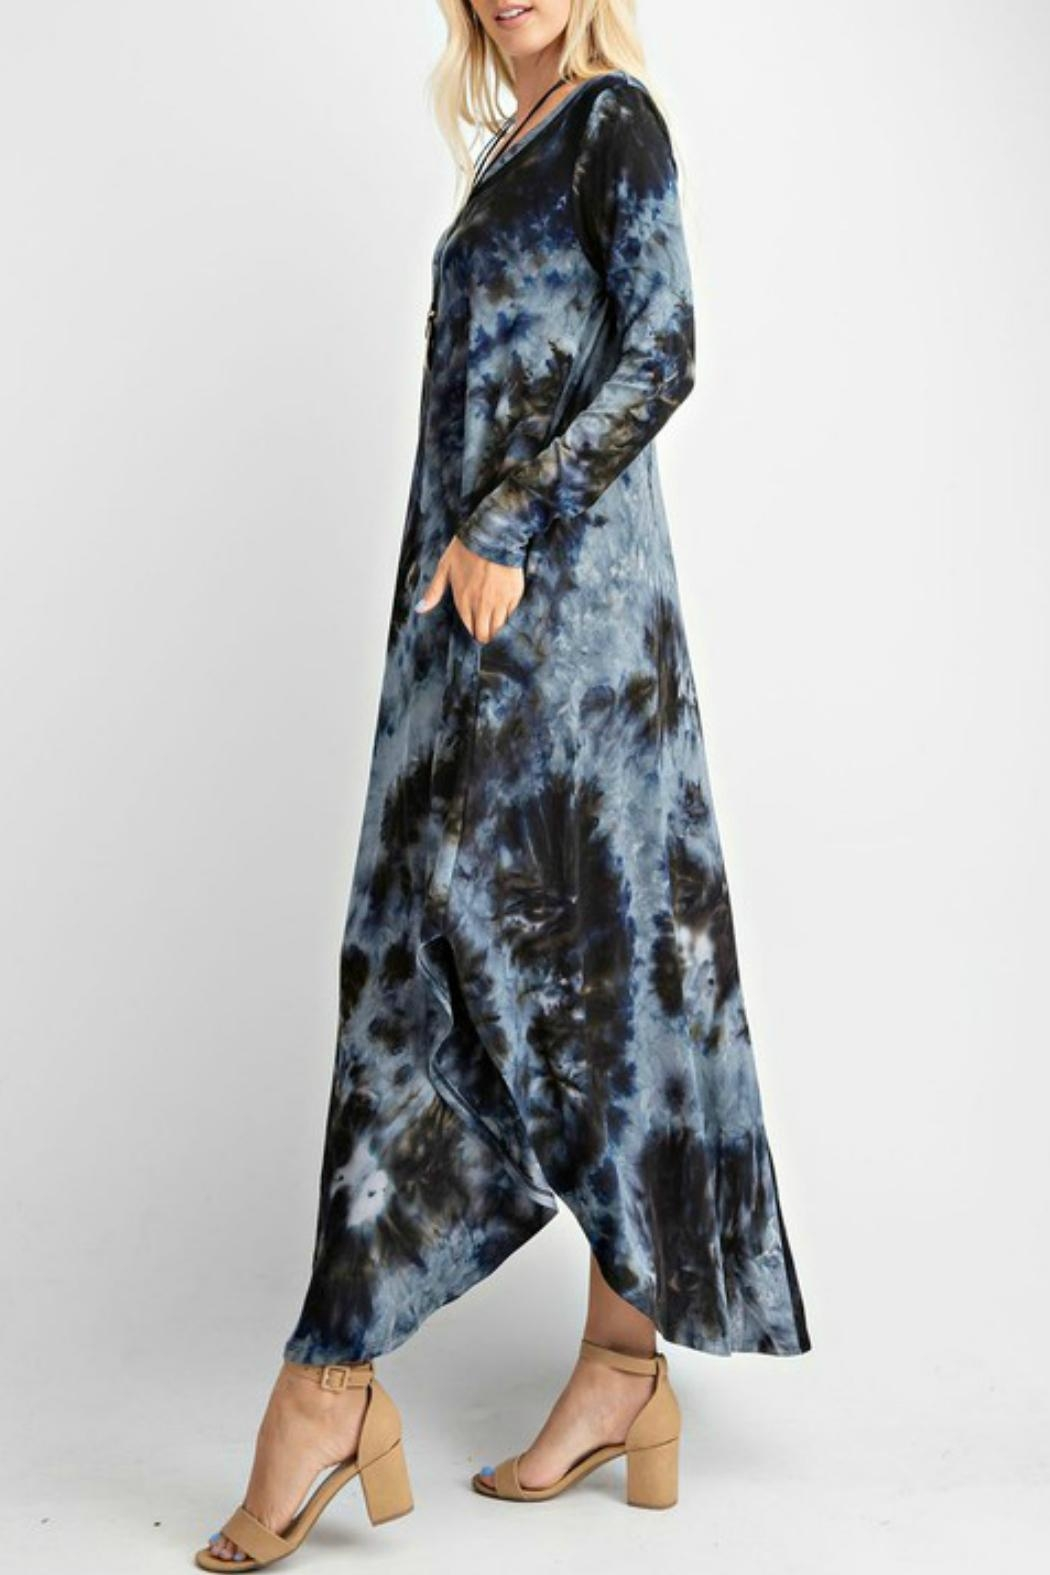 RAE MODE Tie Dye Pocketed Dress - Front Full Image